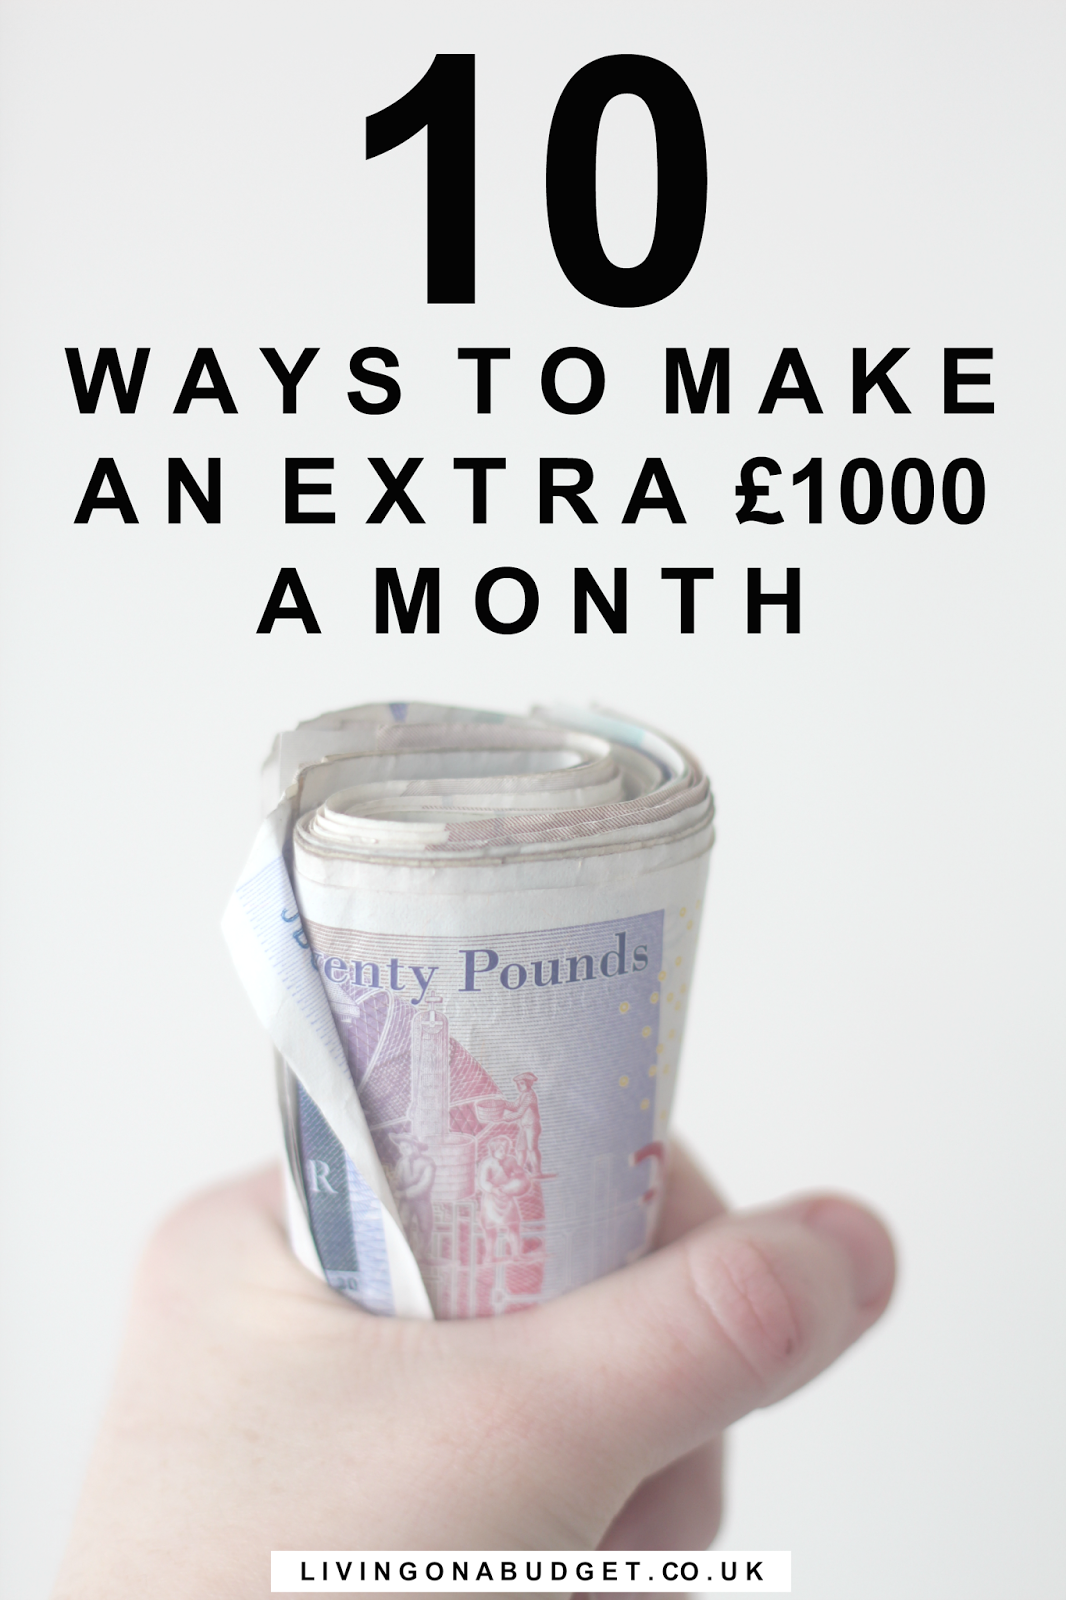 There are many ways to make extra money each month. In this post, you'll learn how to make an extra £1,000 a month!